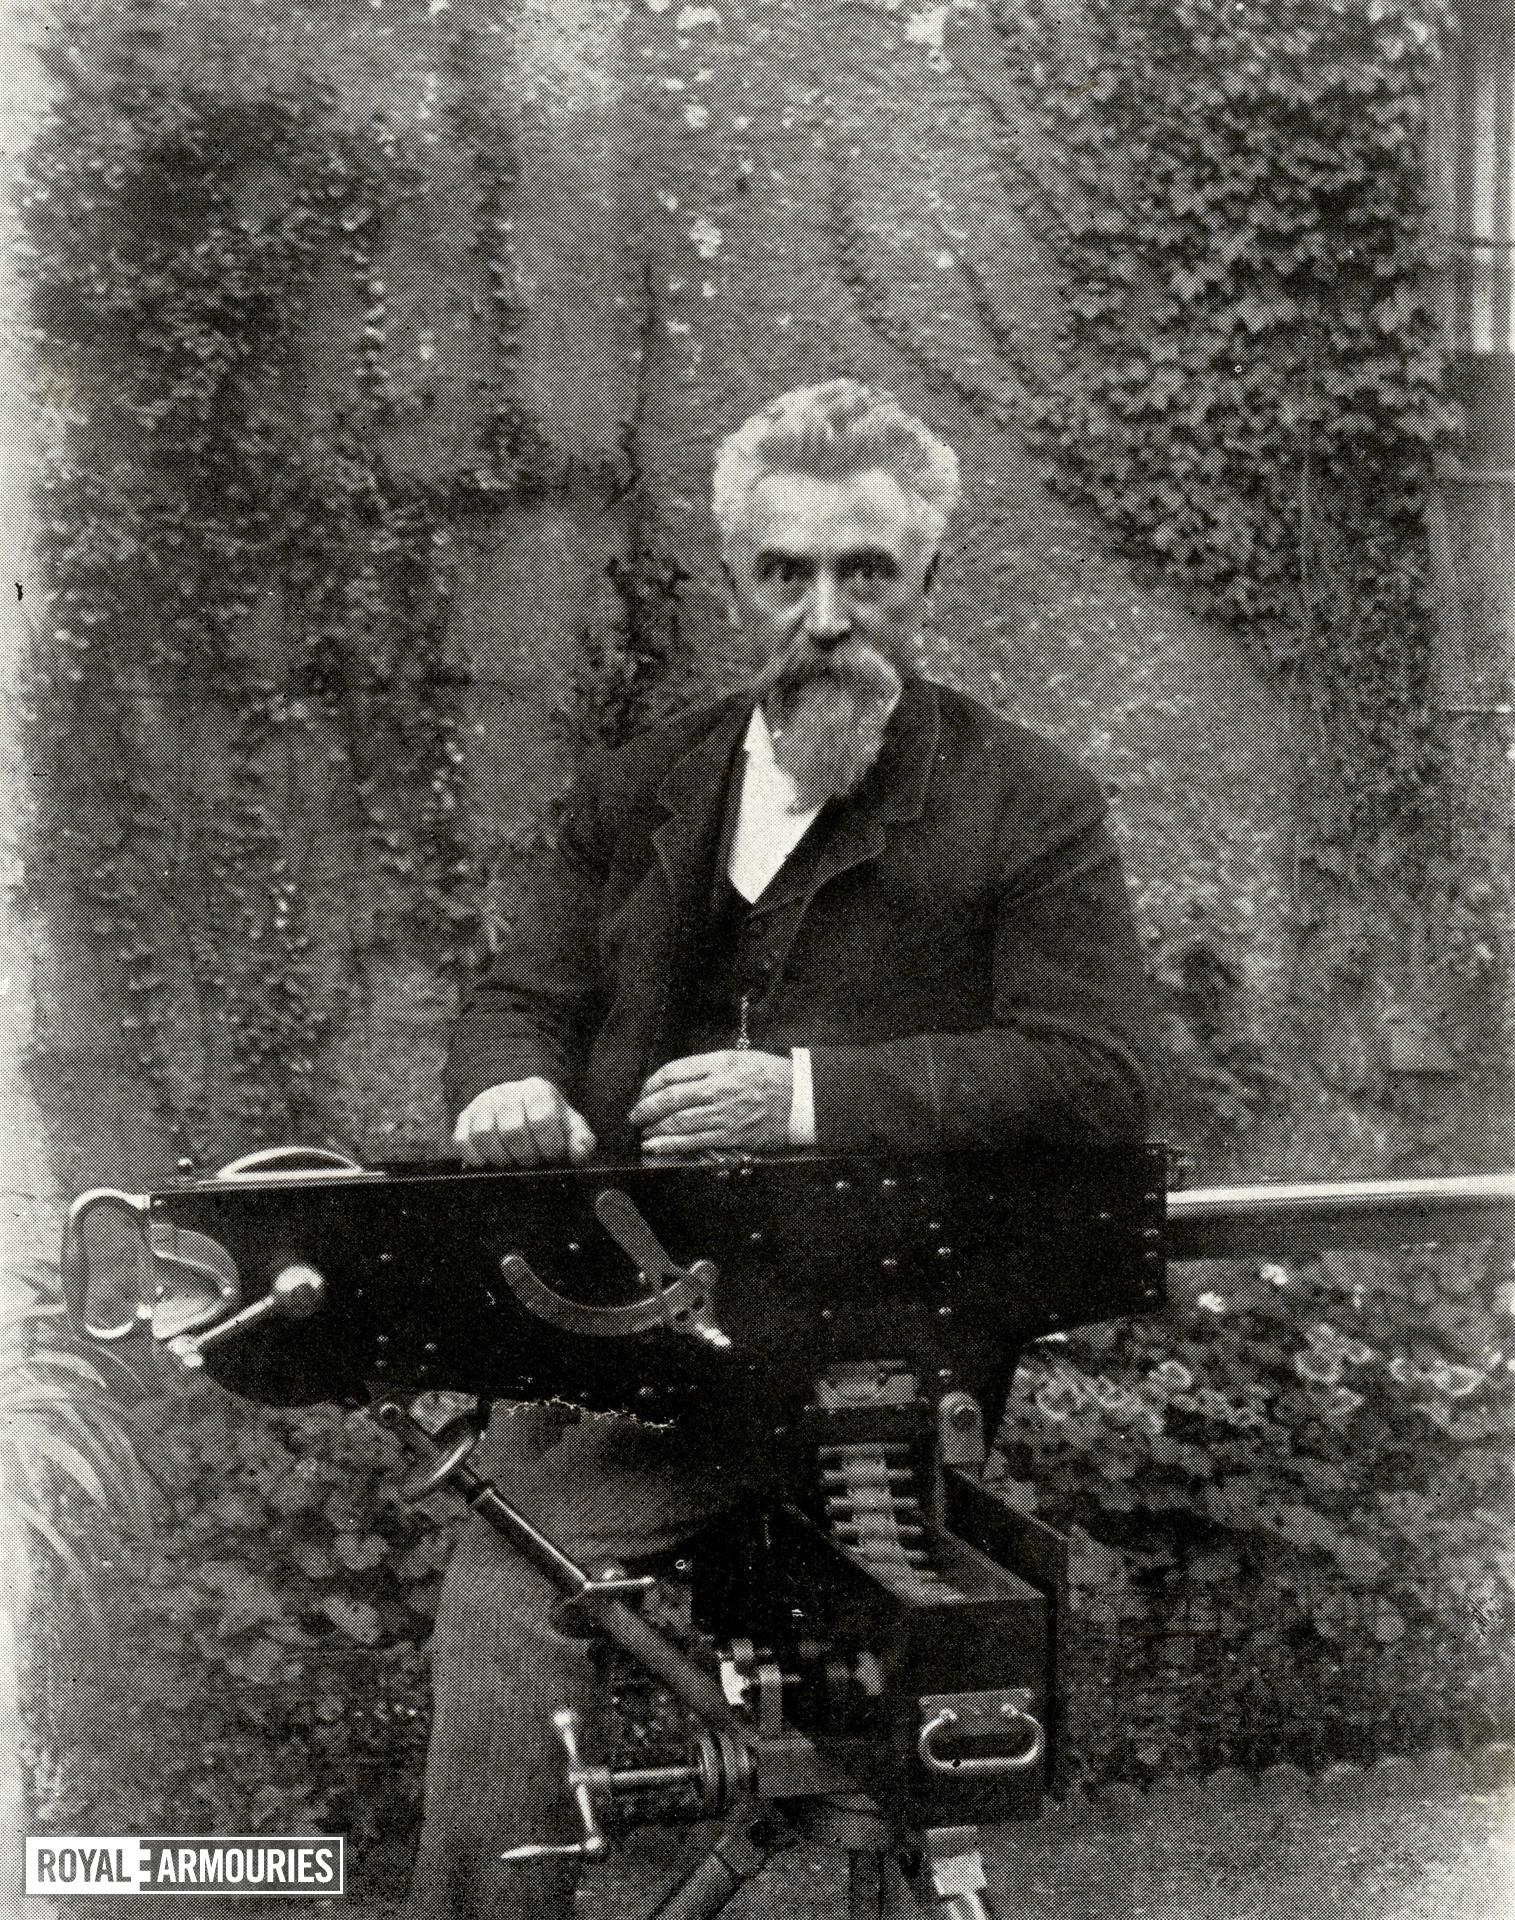 Photograph of Hiram Stevens Maxim with his original prototype gun, taken from Sir Hiram S. Maxim, My Life. London: Methuen, 1915.